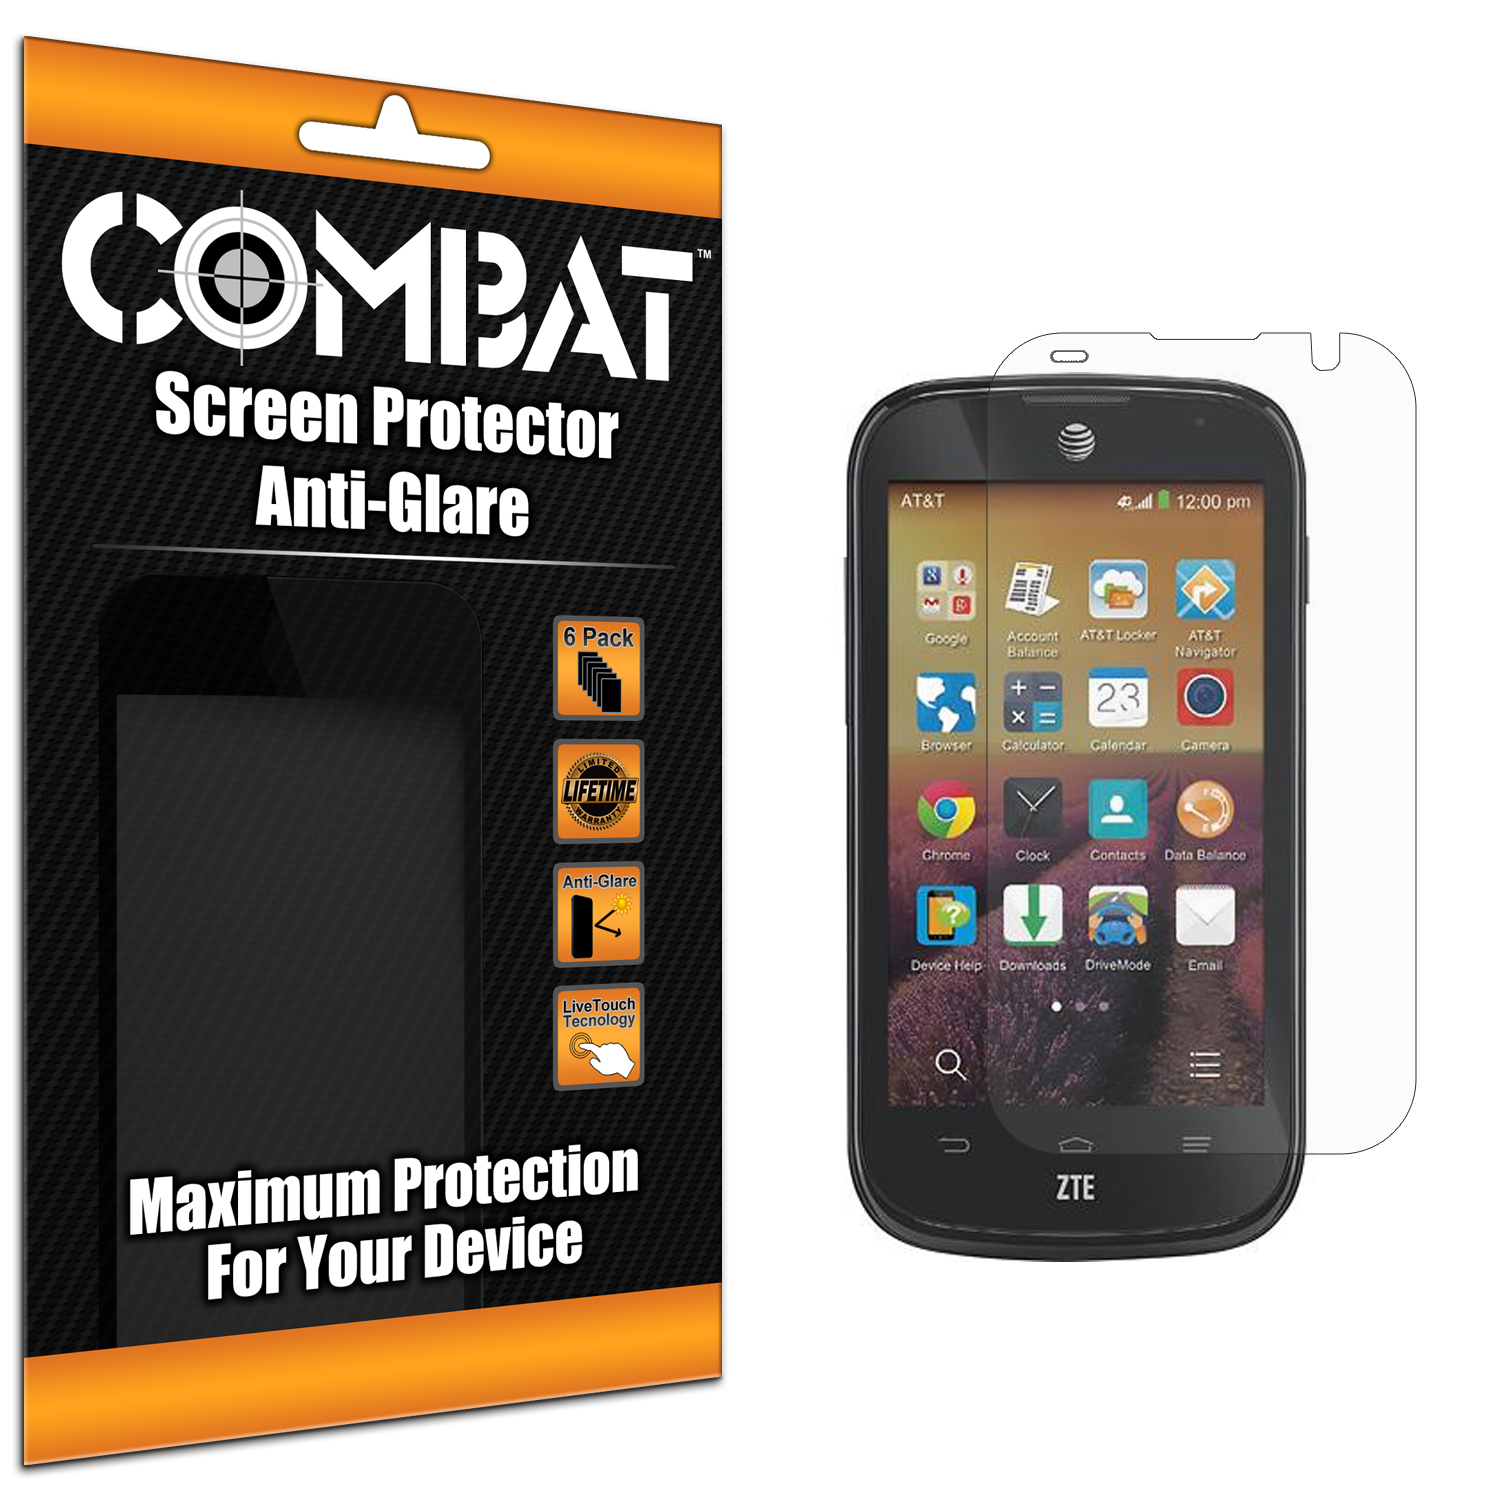 ZTE Compel Combat 6 Pack Anti-Glare Matte Screen Protector